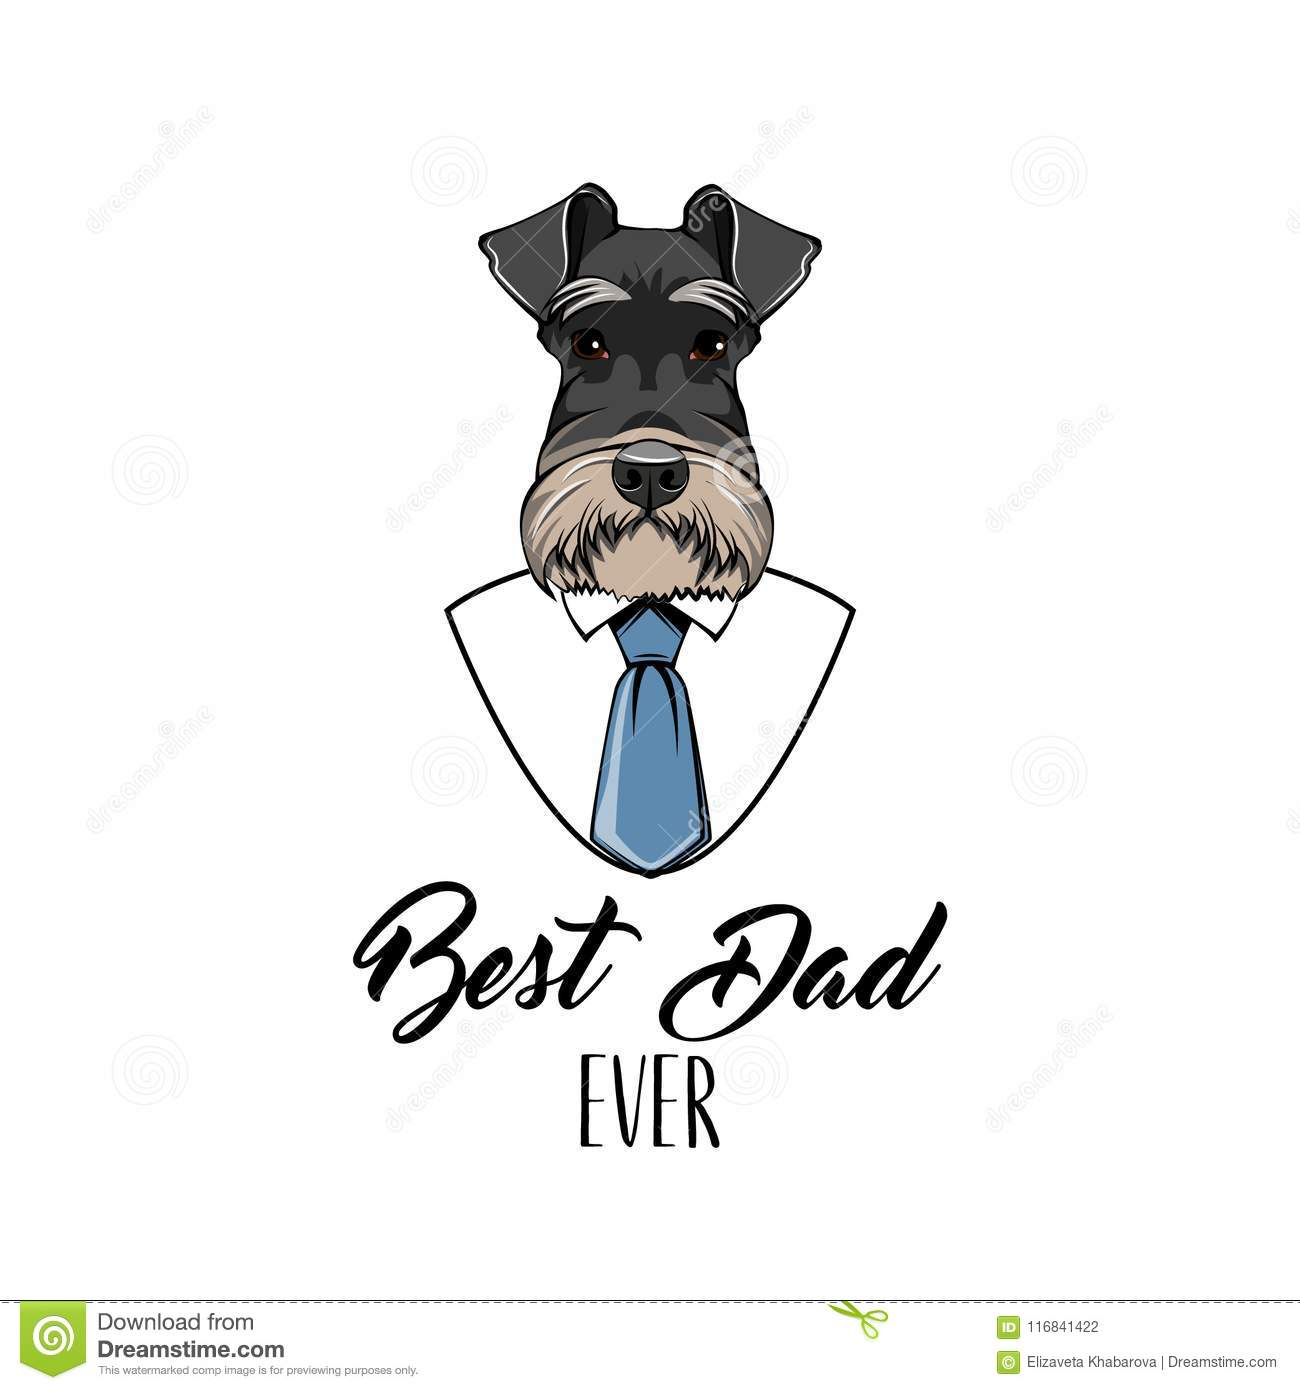 f169afd5 Schnauzer Dog. Fathers day greeting card. White shirt, blue necktie. Best  dad ever inscription. Dad gift. Vector.